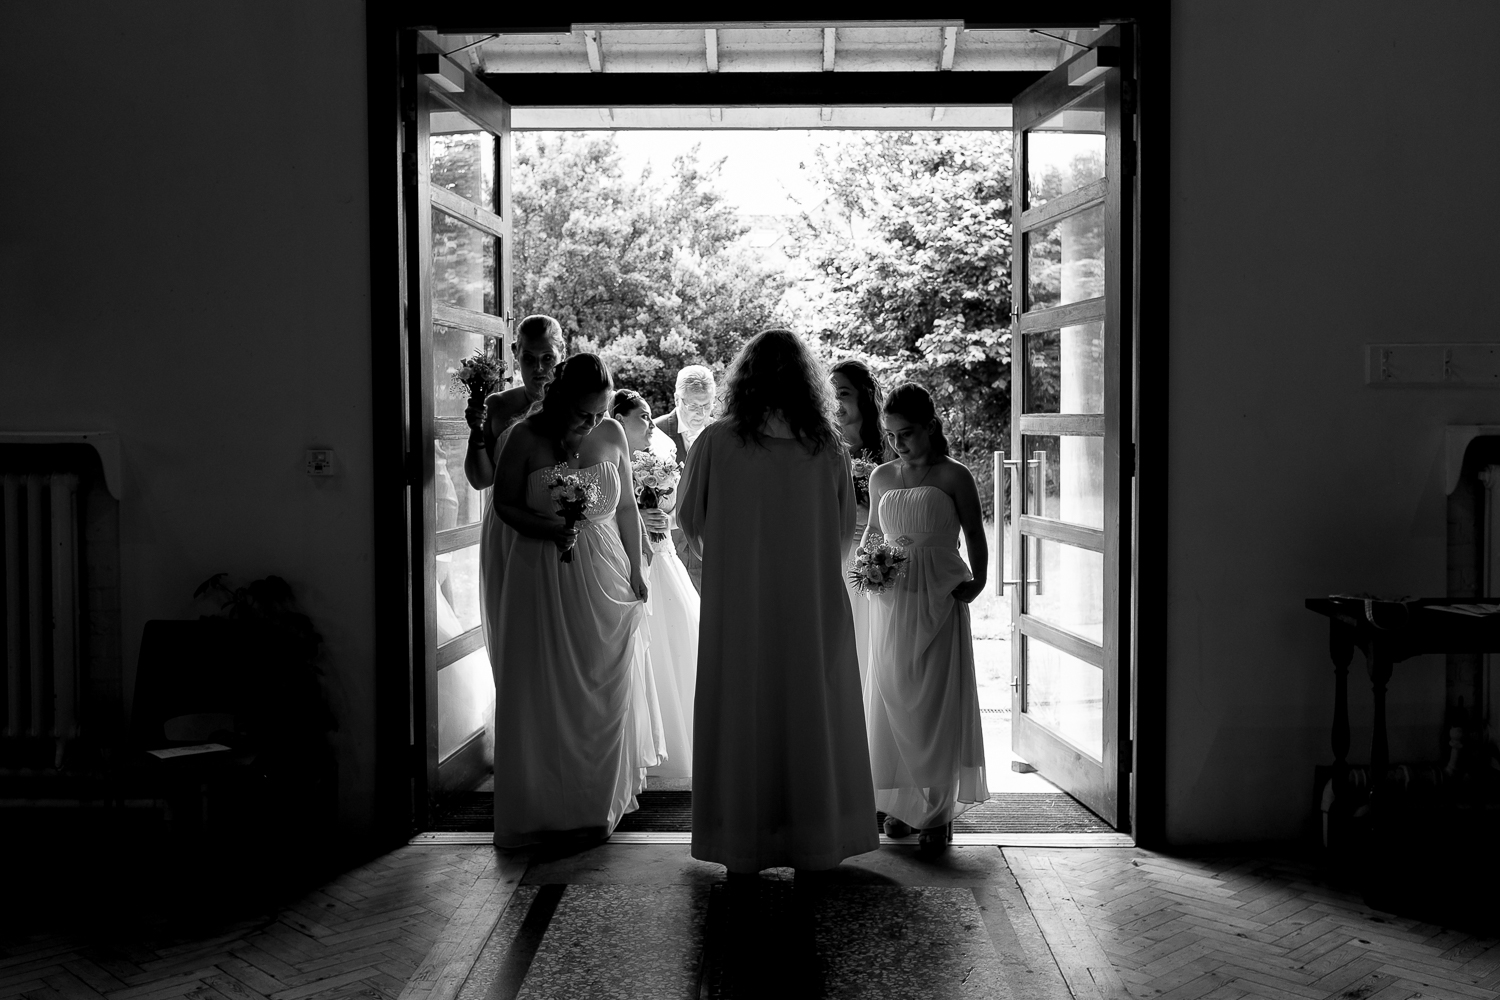 st michael and all angels wedding photography-29.jpg